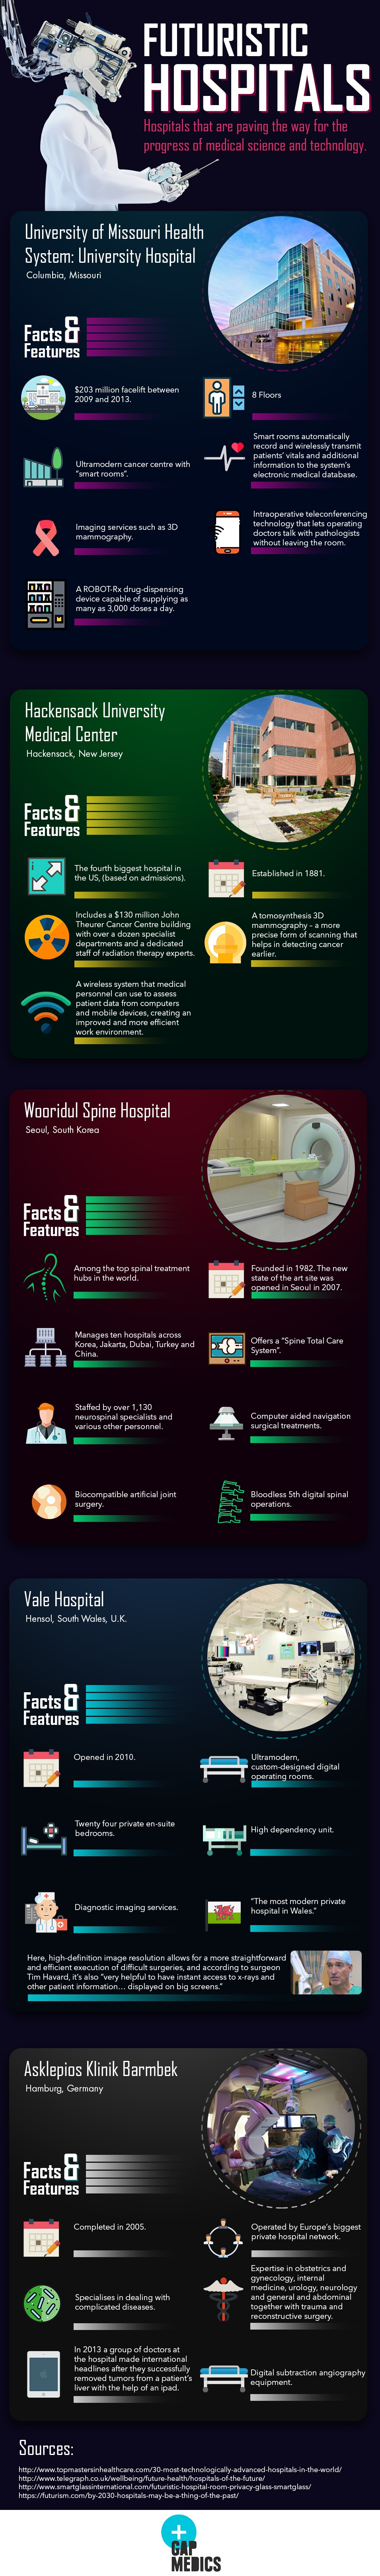 Interesting Facts About Futuristic Hospitals - Infographic